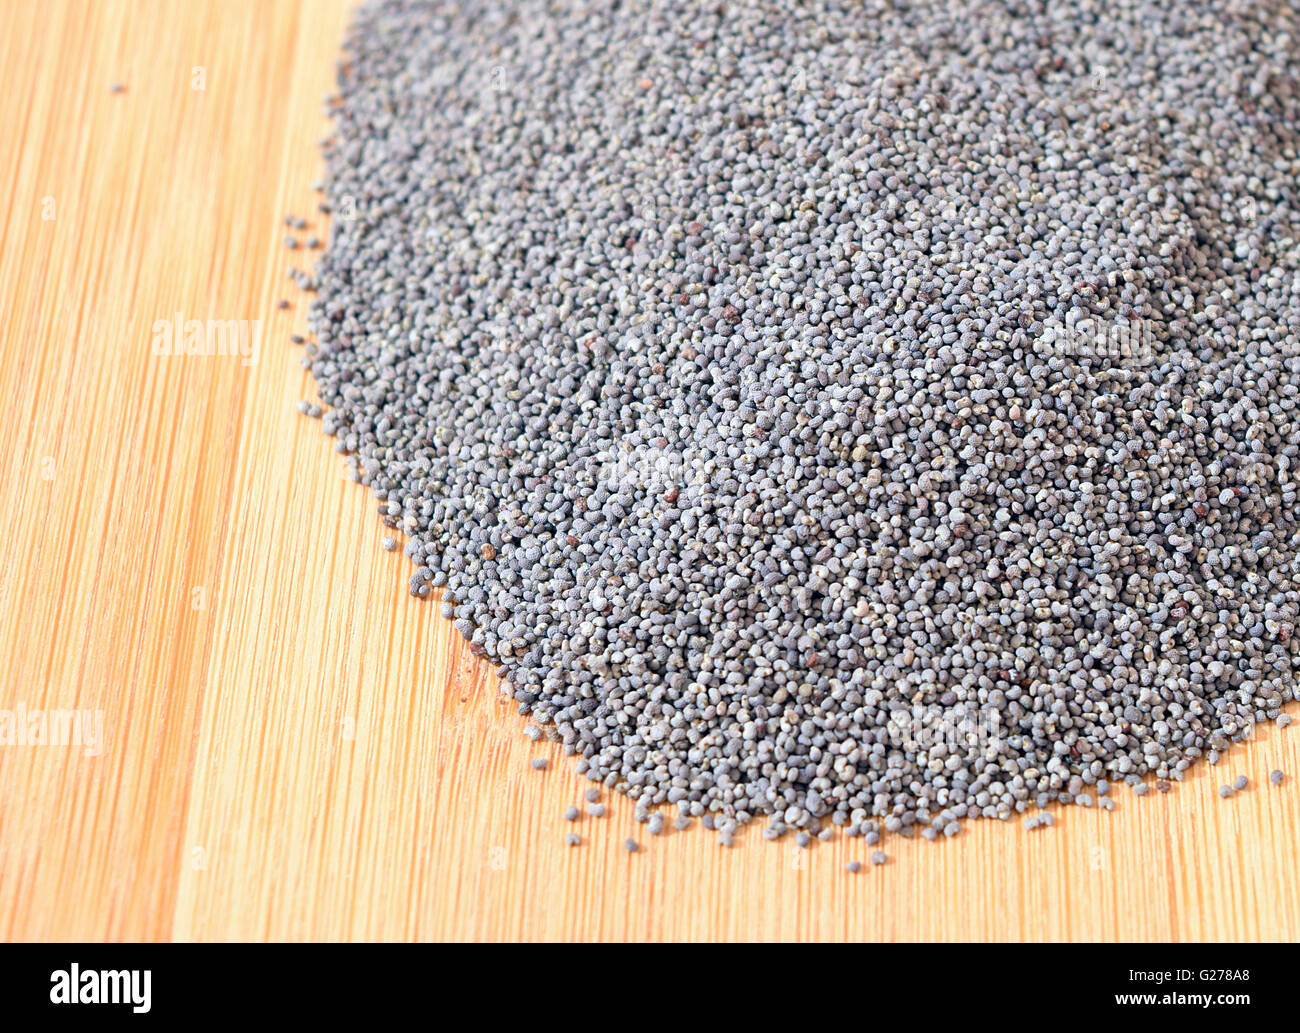 Pile of poppy seeds isolated on wooden background - Stock Image